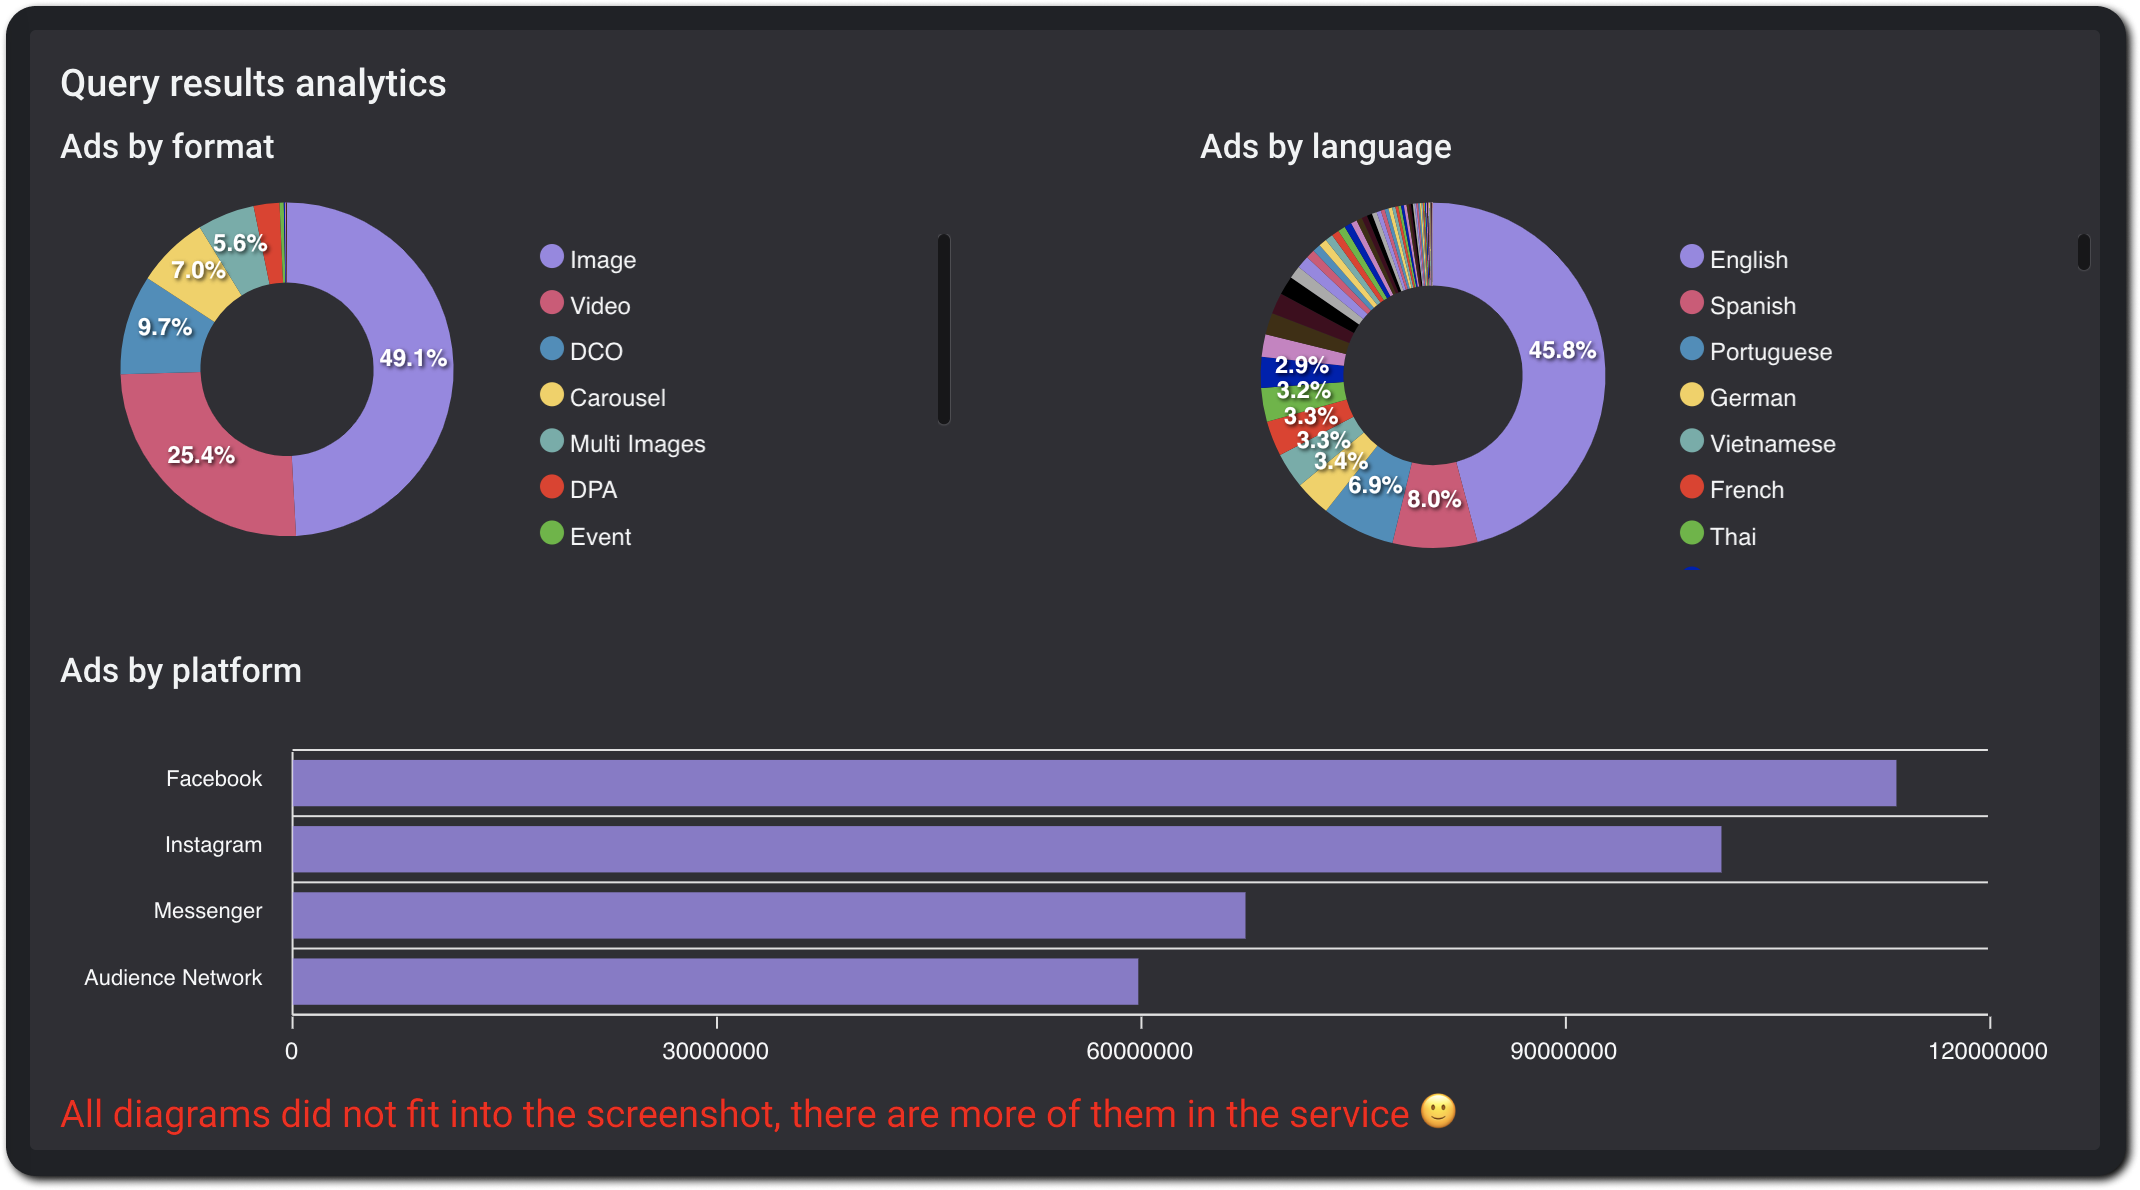 You can view analytics for any query - distribution of ads by formats, languages, CTA types and placement platforms.